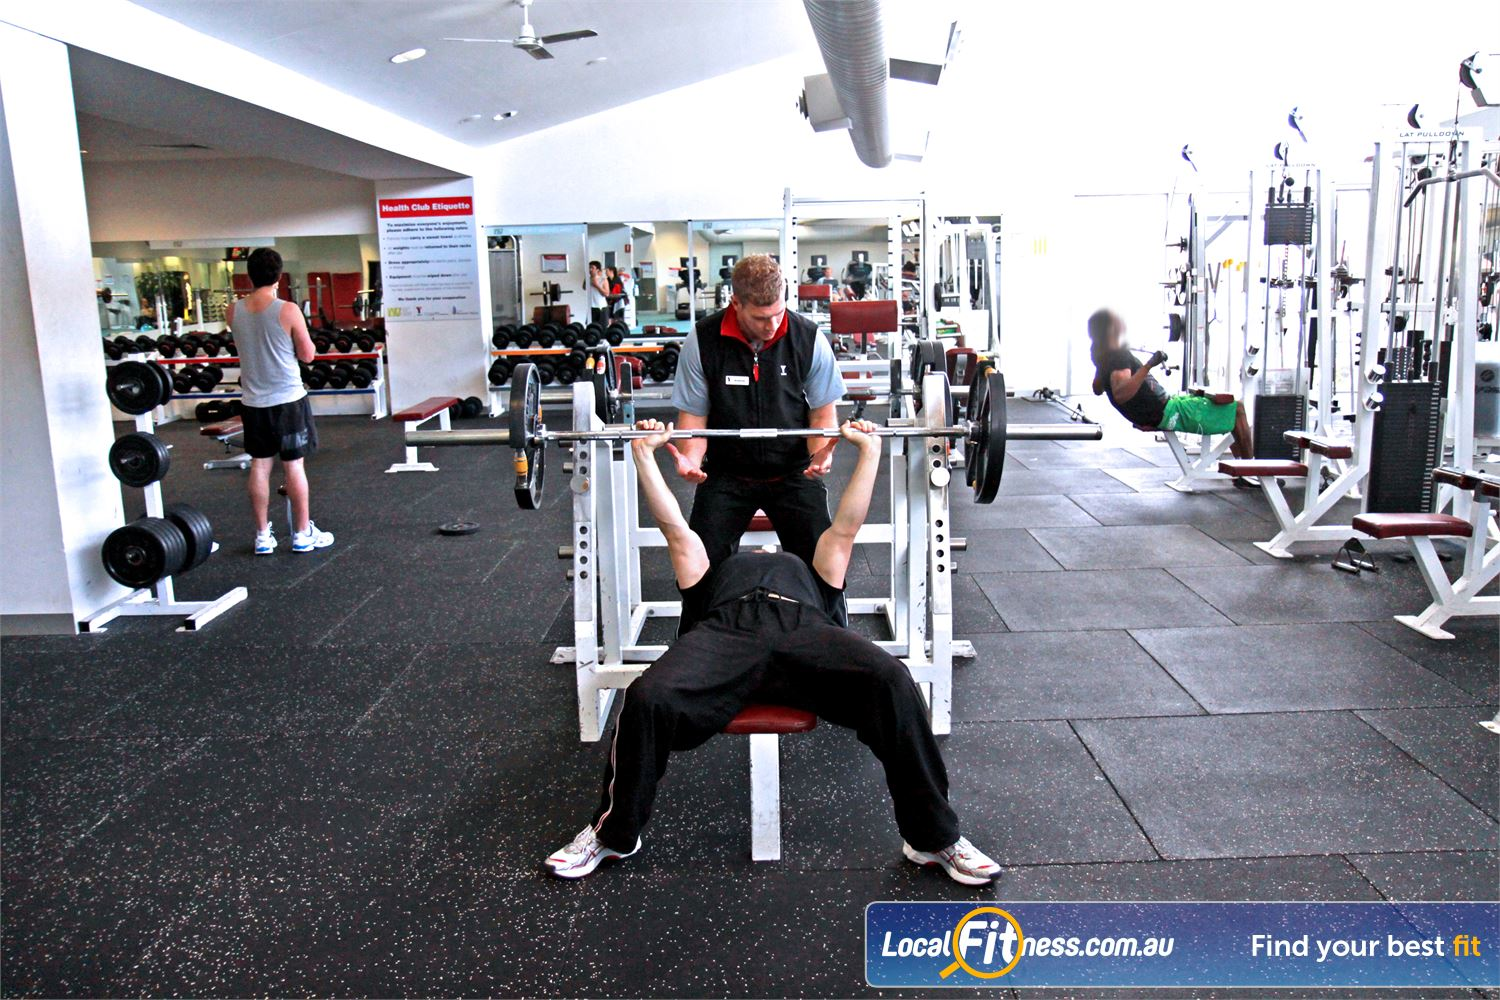 Ascot Vale Leisure Centre Near Moonee Ponds Ascot Value personal trainers will provide the highest level of service.